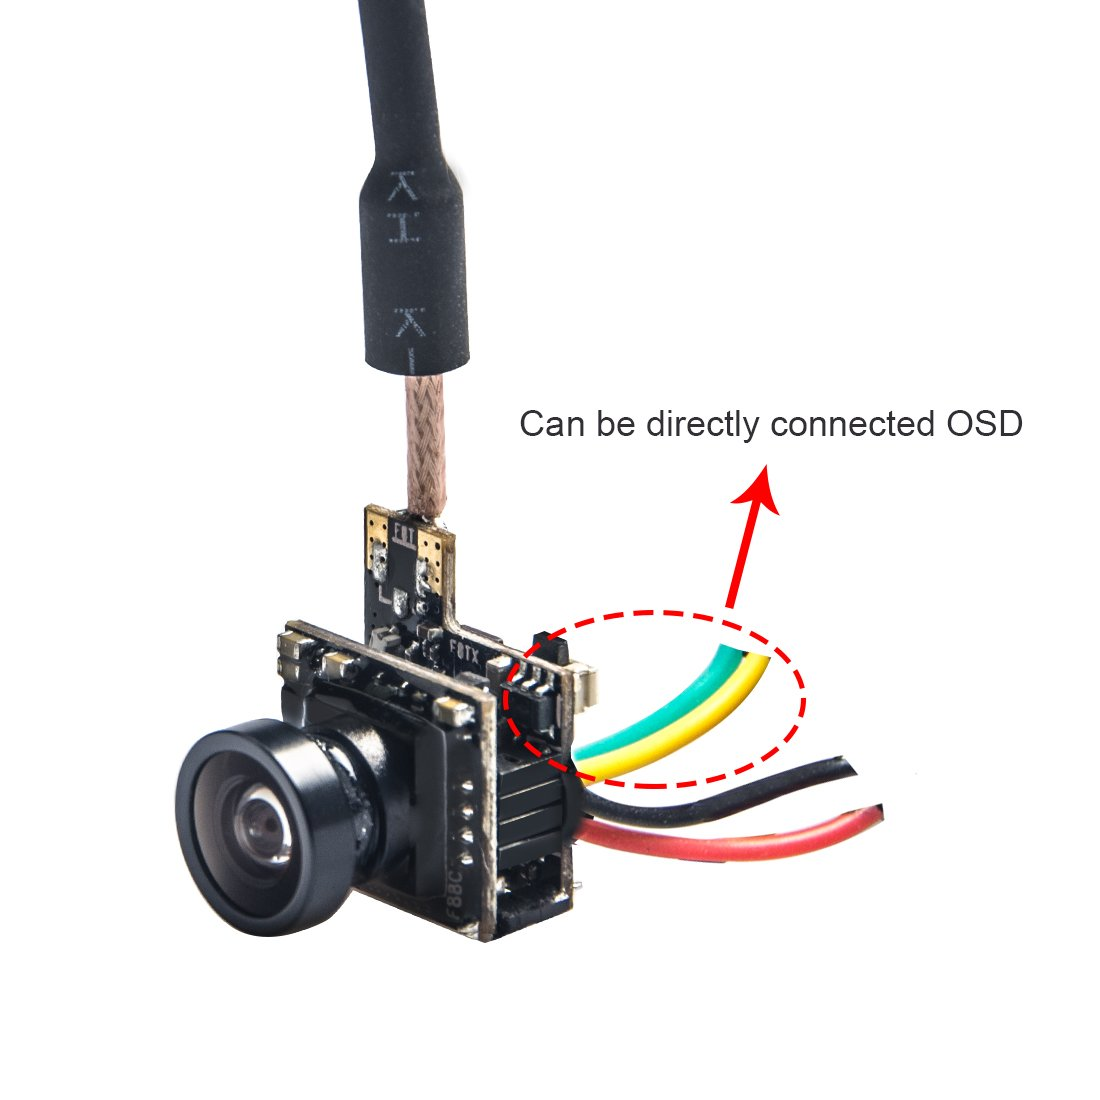 Wolfwhoop WT07 Micro 5.8GHz 48CH 25mW FPV Transmitter and 600TVL Camera with OSD Interface for FPV Quadcopter Drone